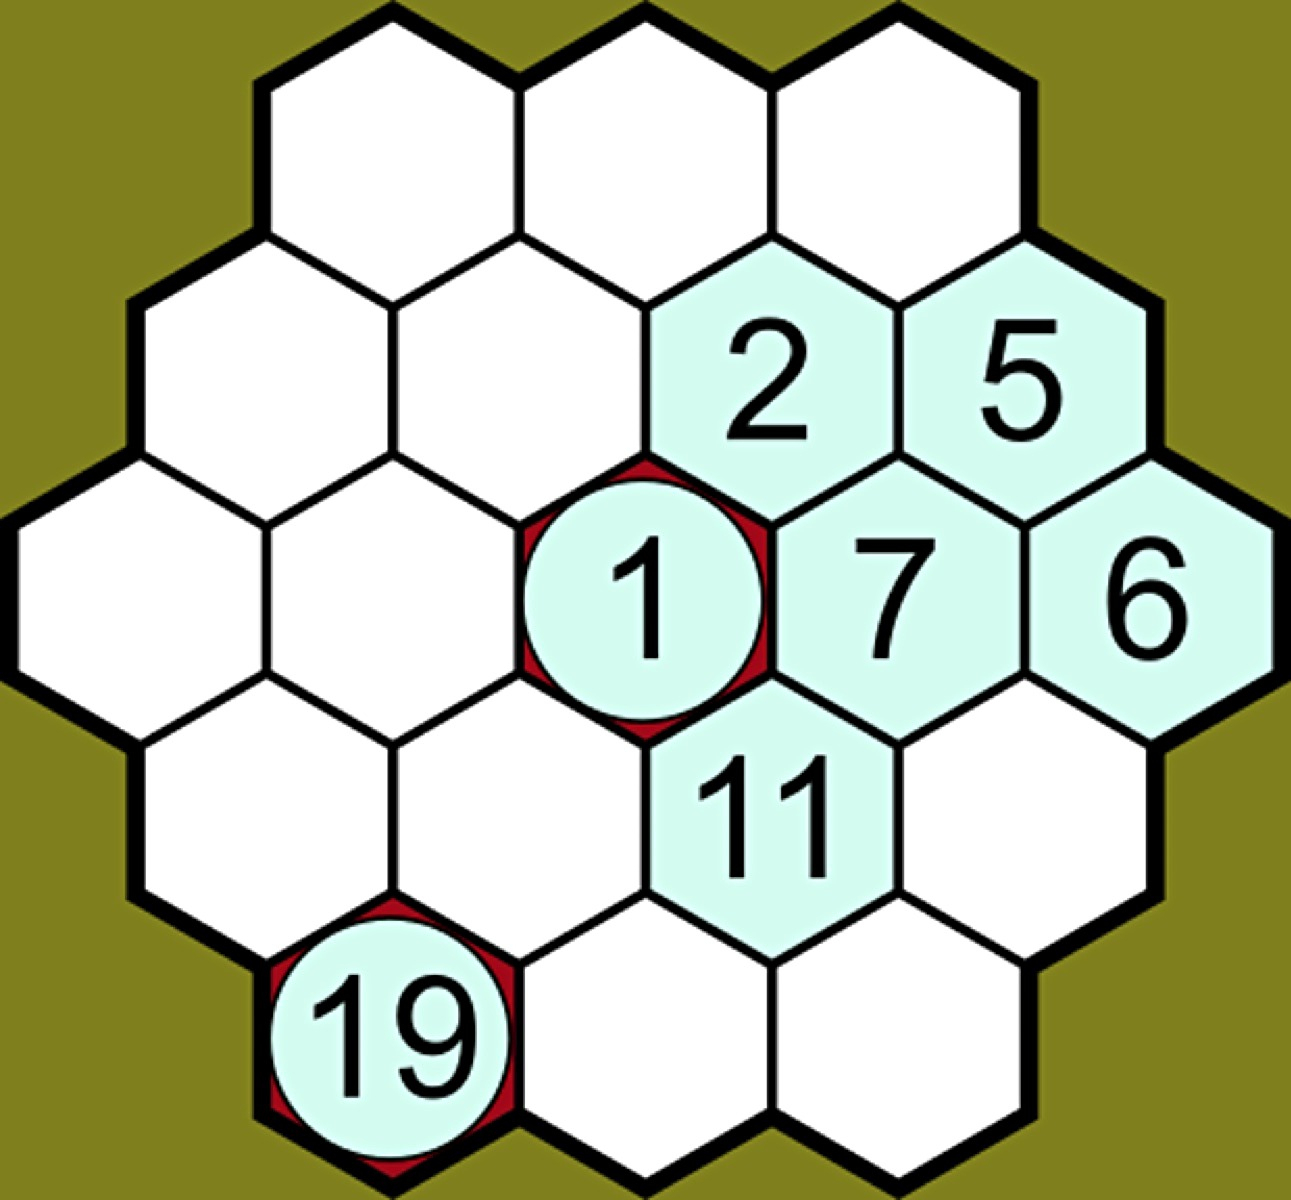 Can You Solve It? Is Beehive Hidato The New Sudoku